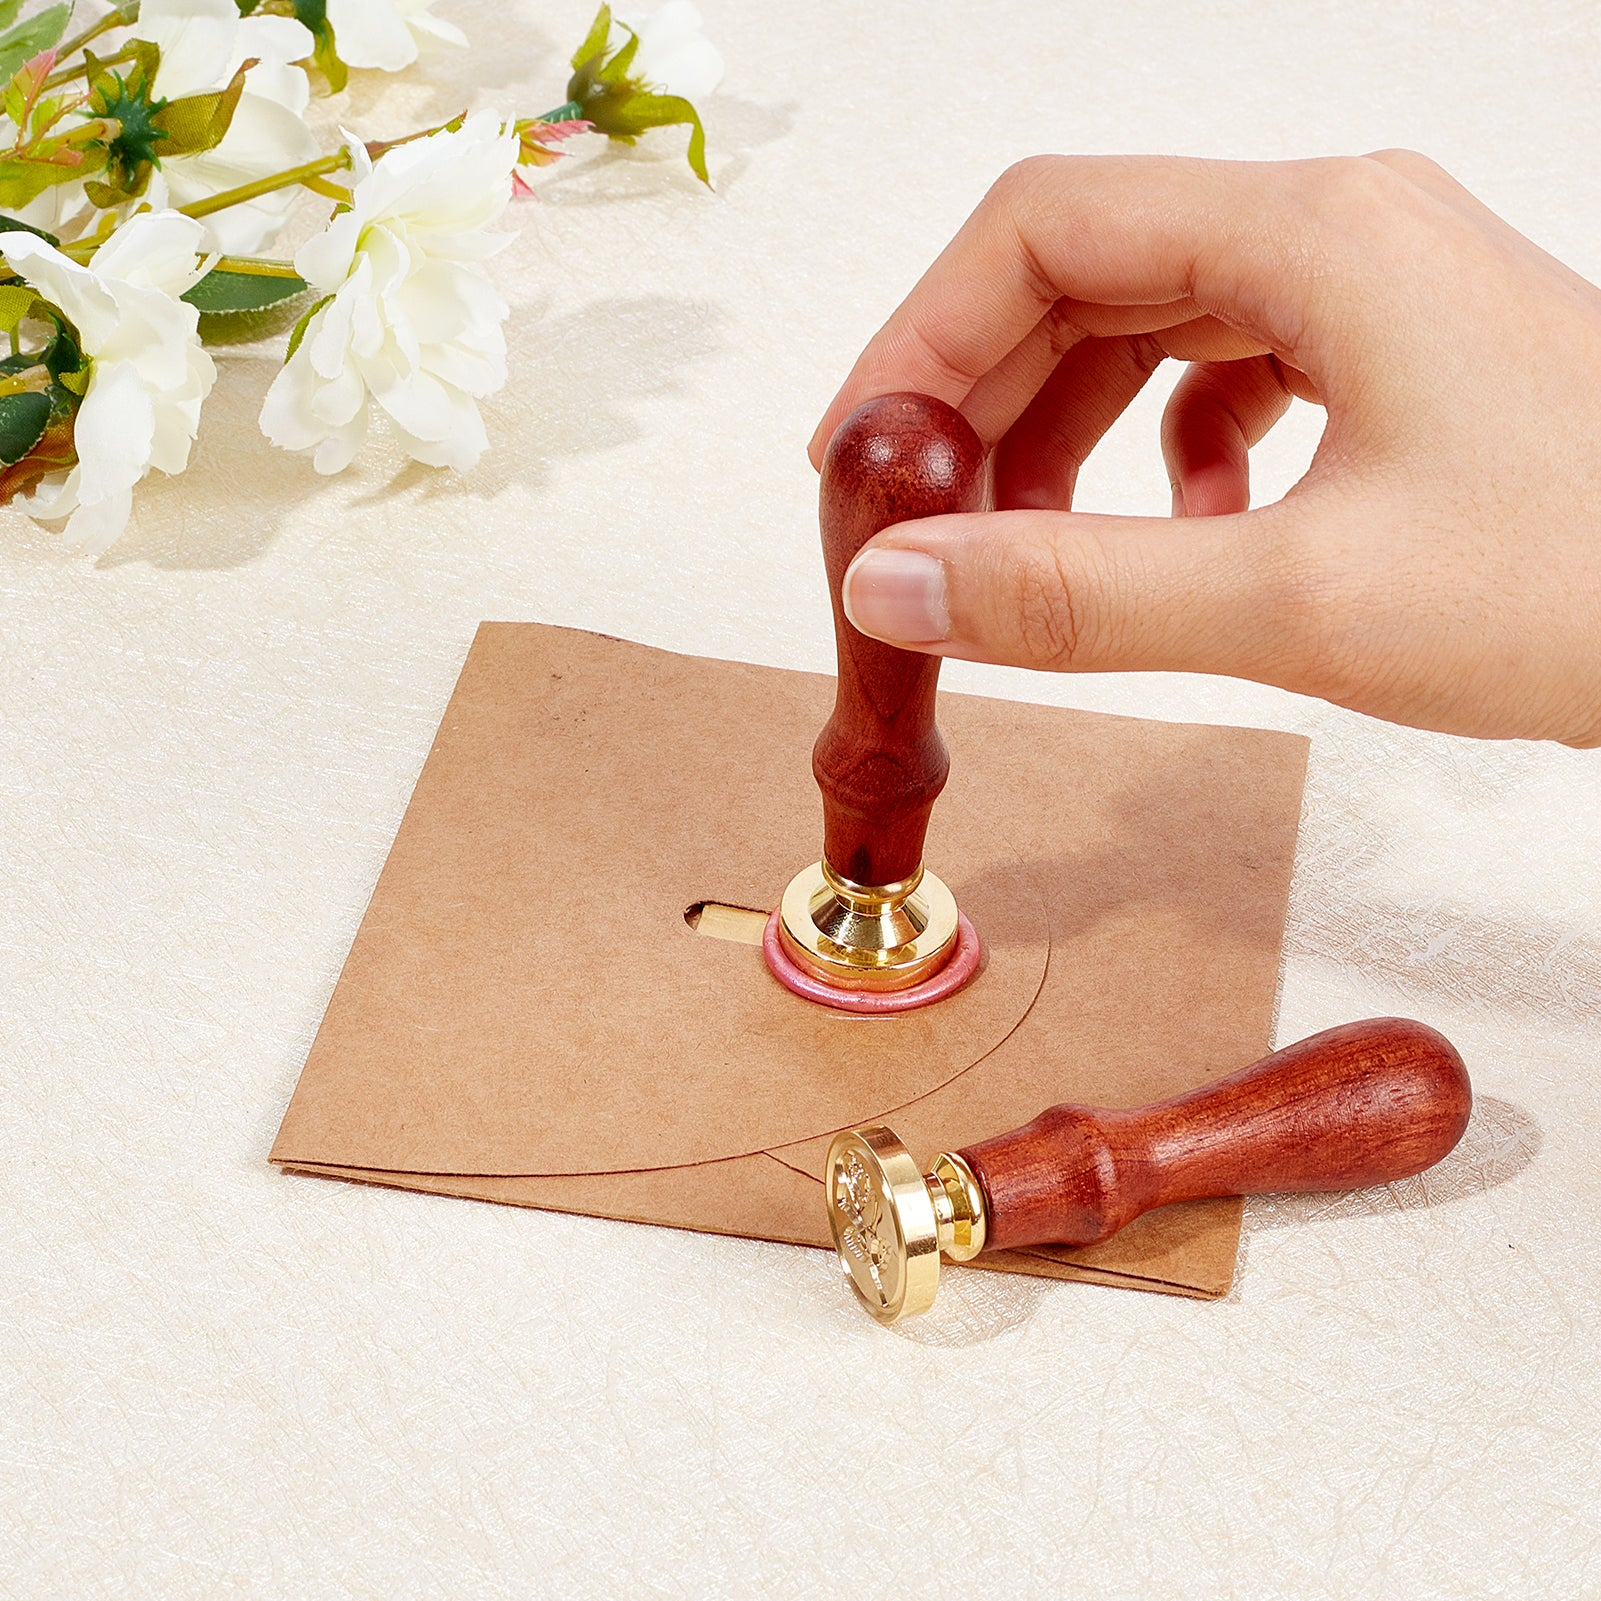 Rose Wax Seal Stamp Set(stamp heads and handles)